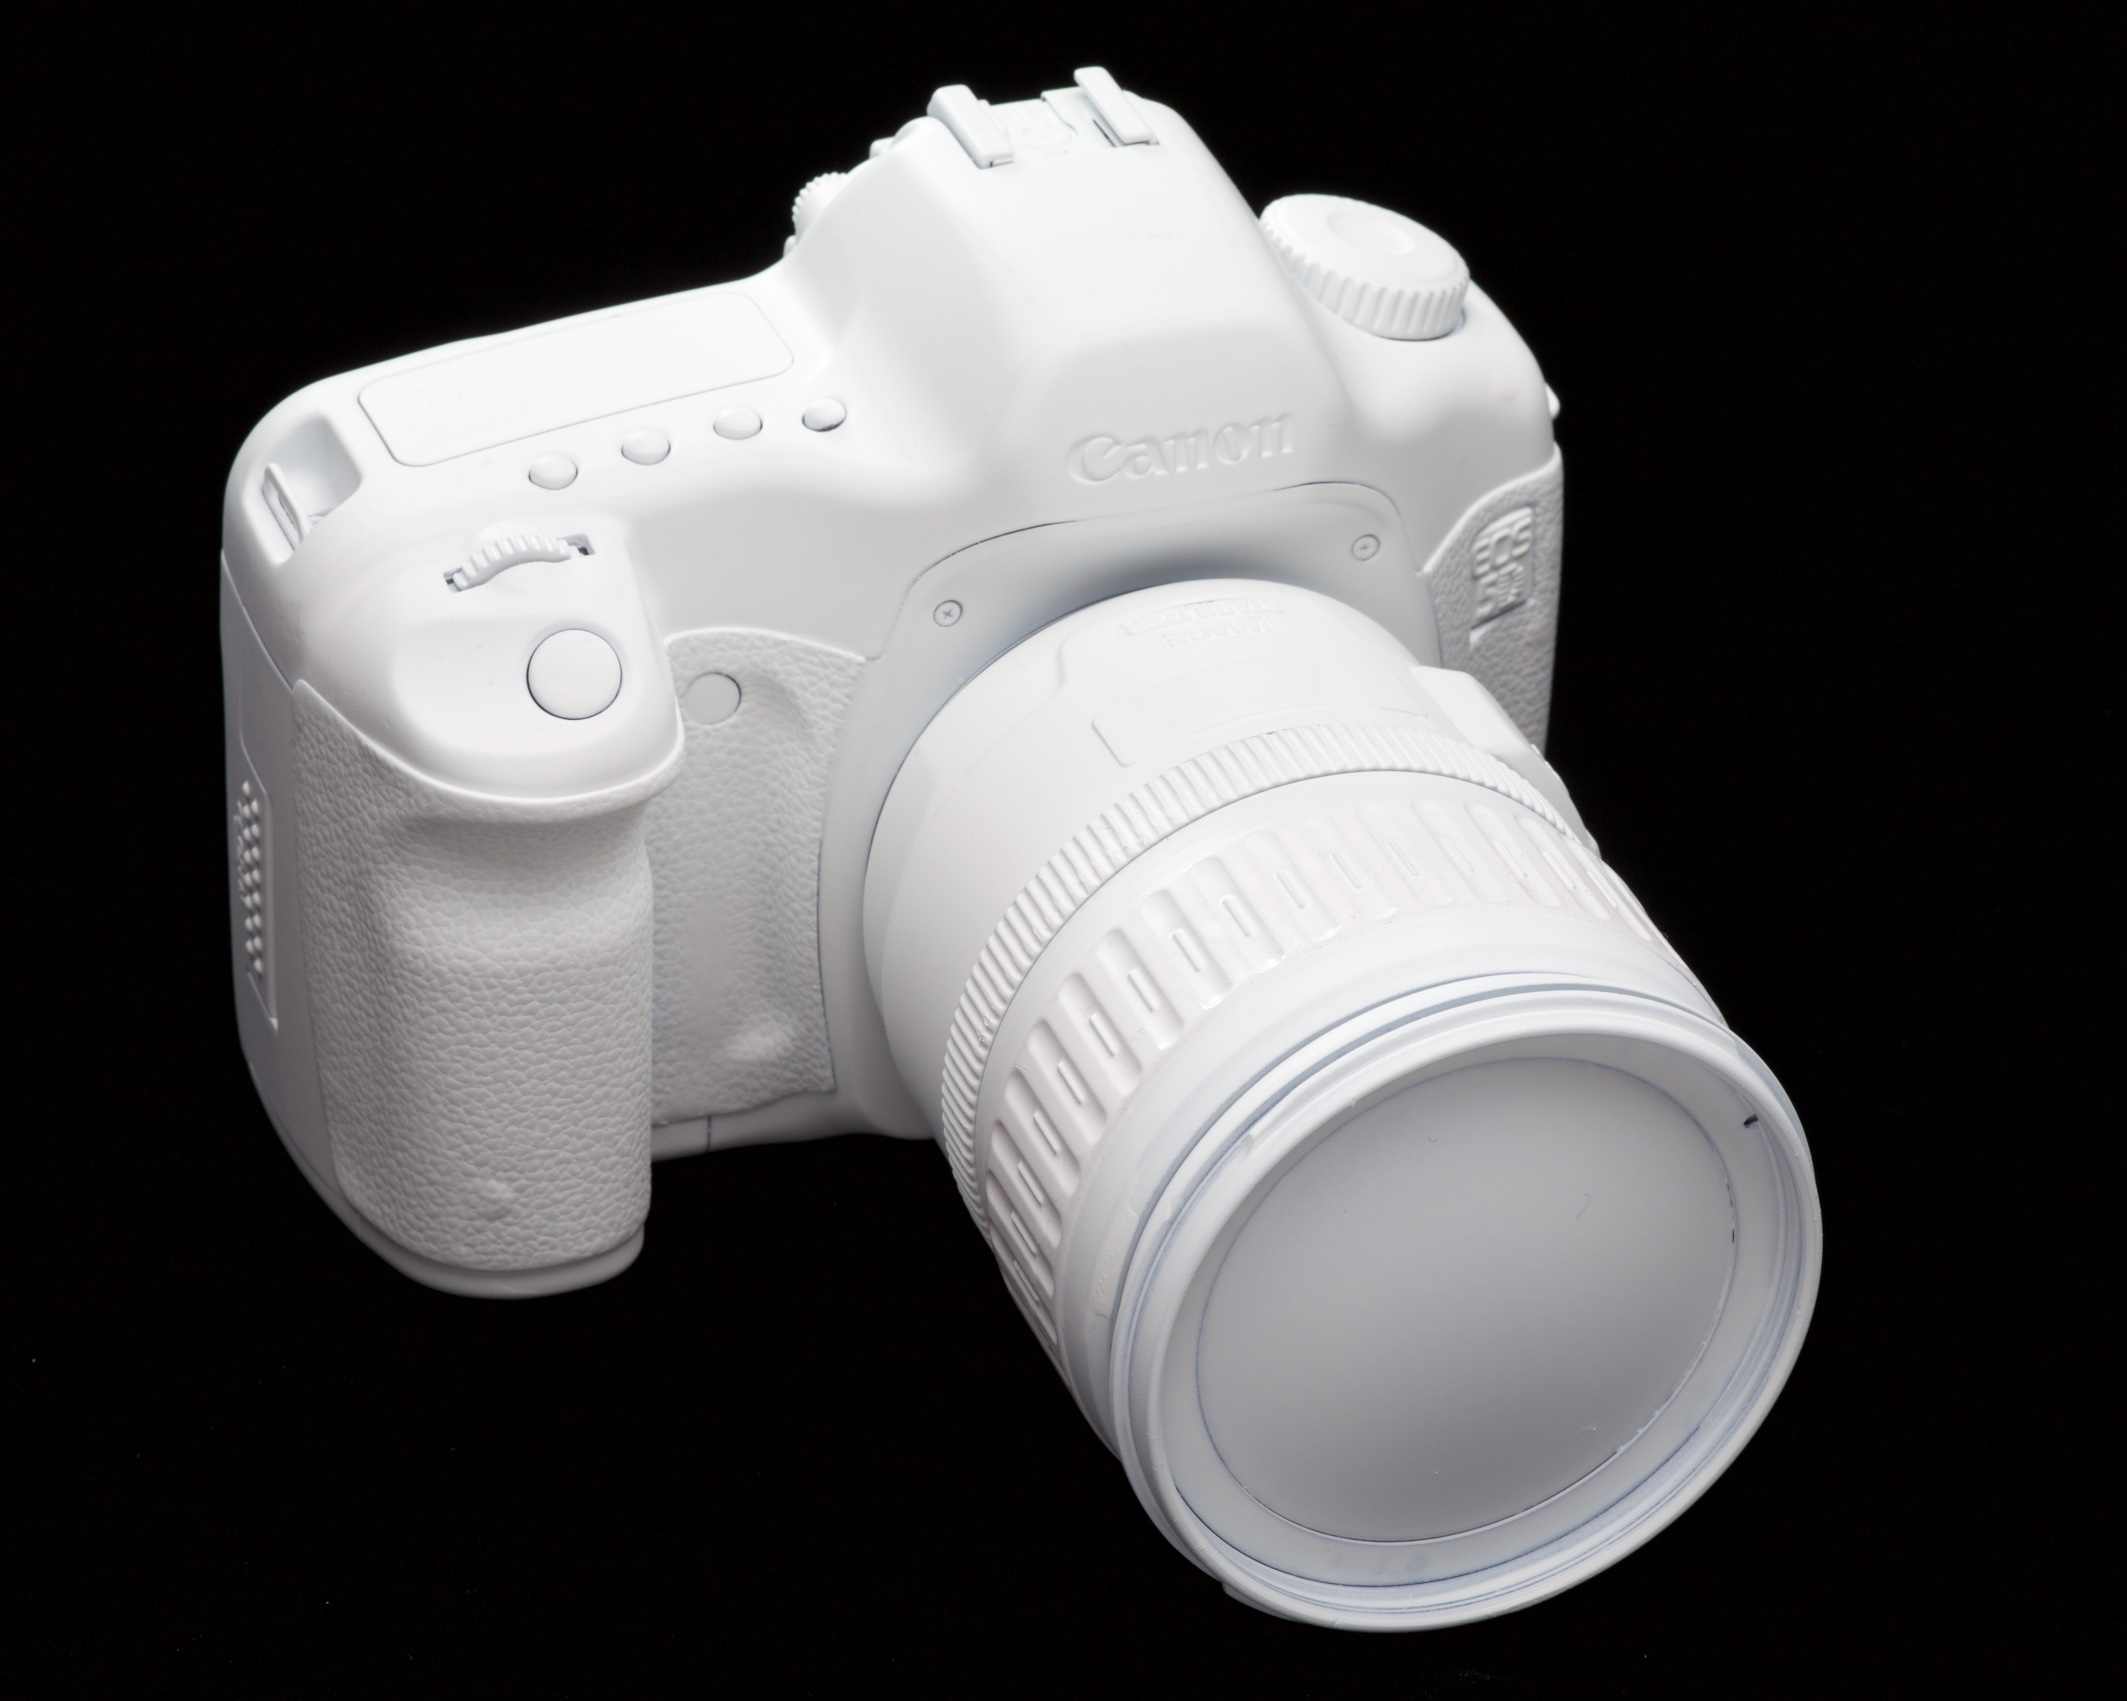 """Canon's secretly produced Finnish Ski Patrol model 5D and 28-135 IS with """"Nival-Crystal Coat."""""""